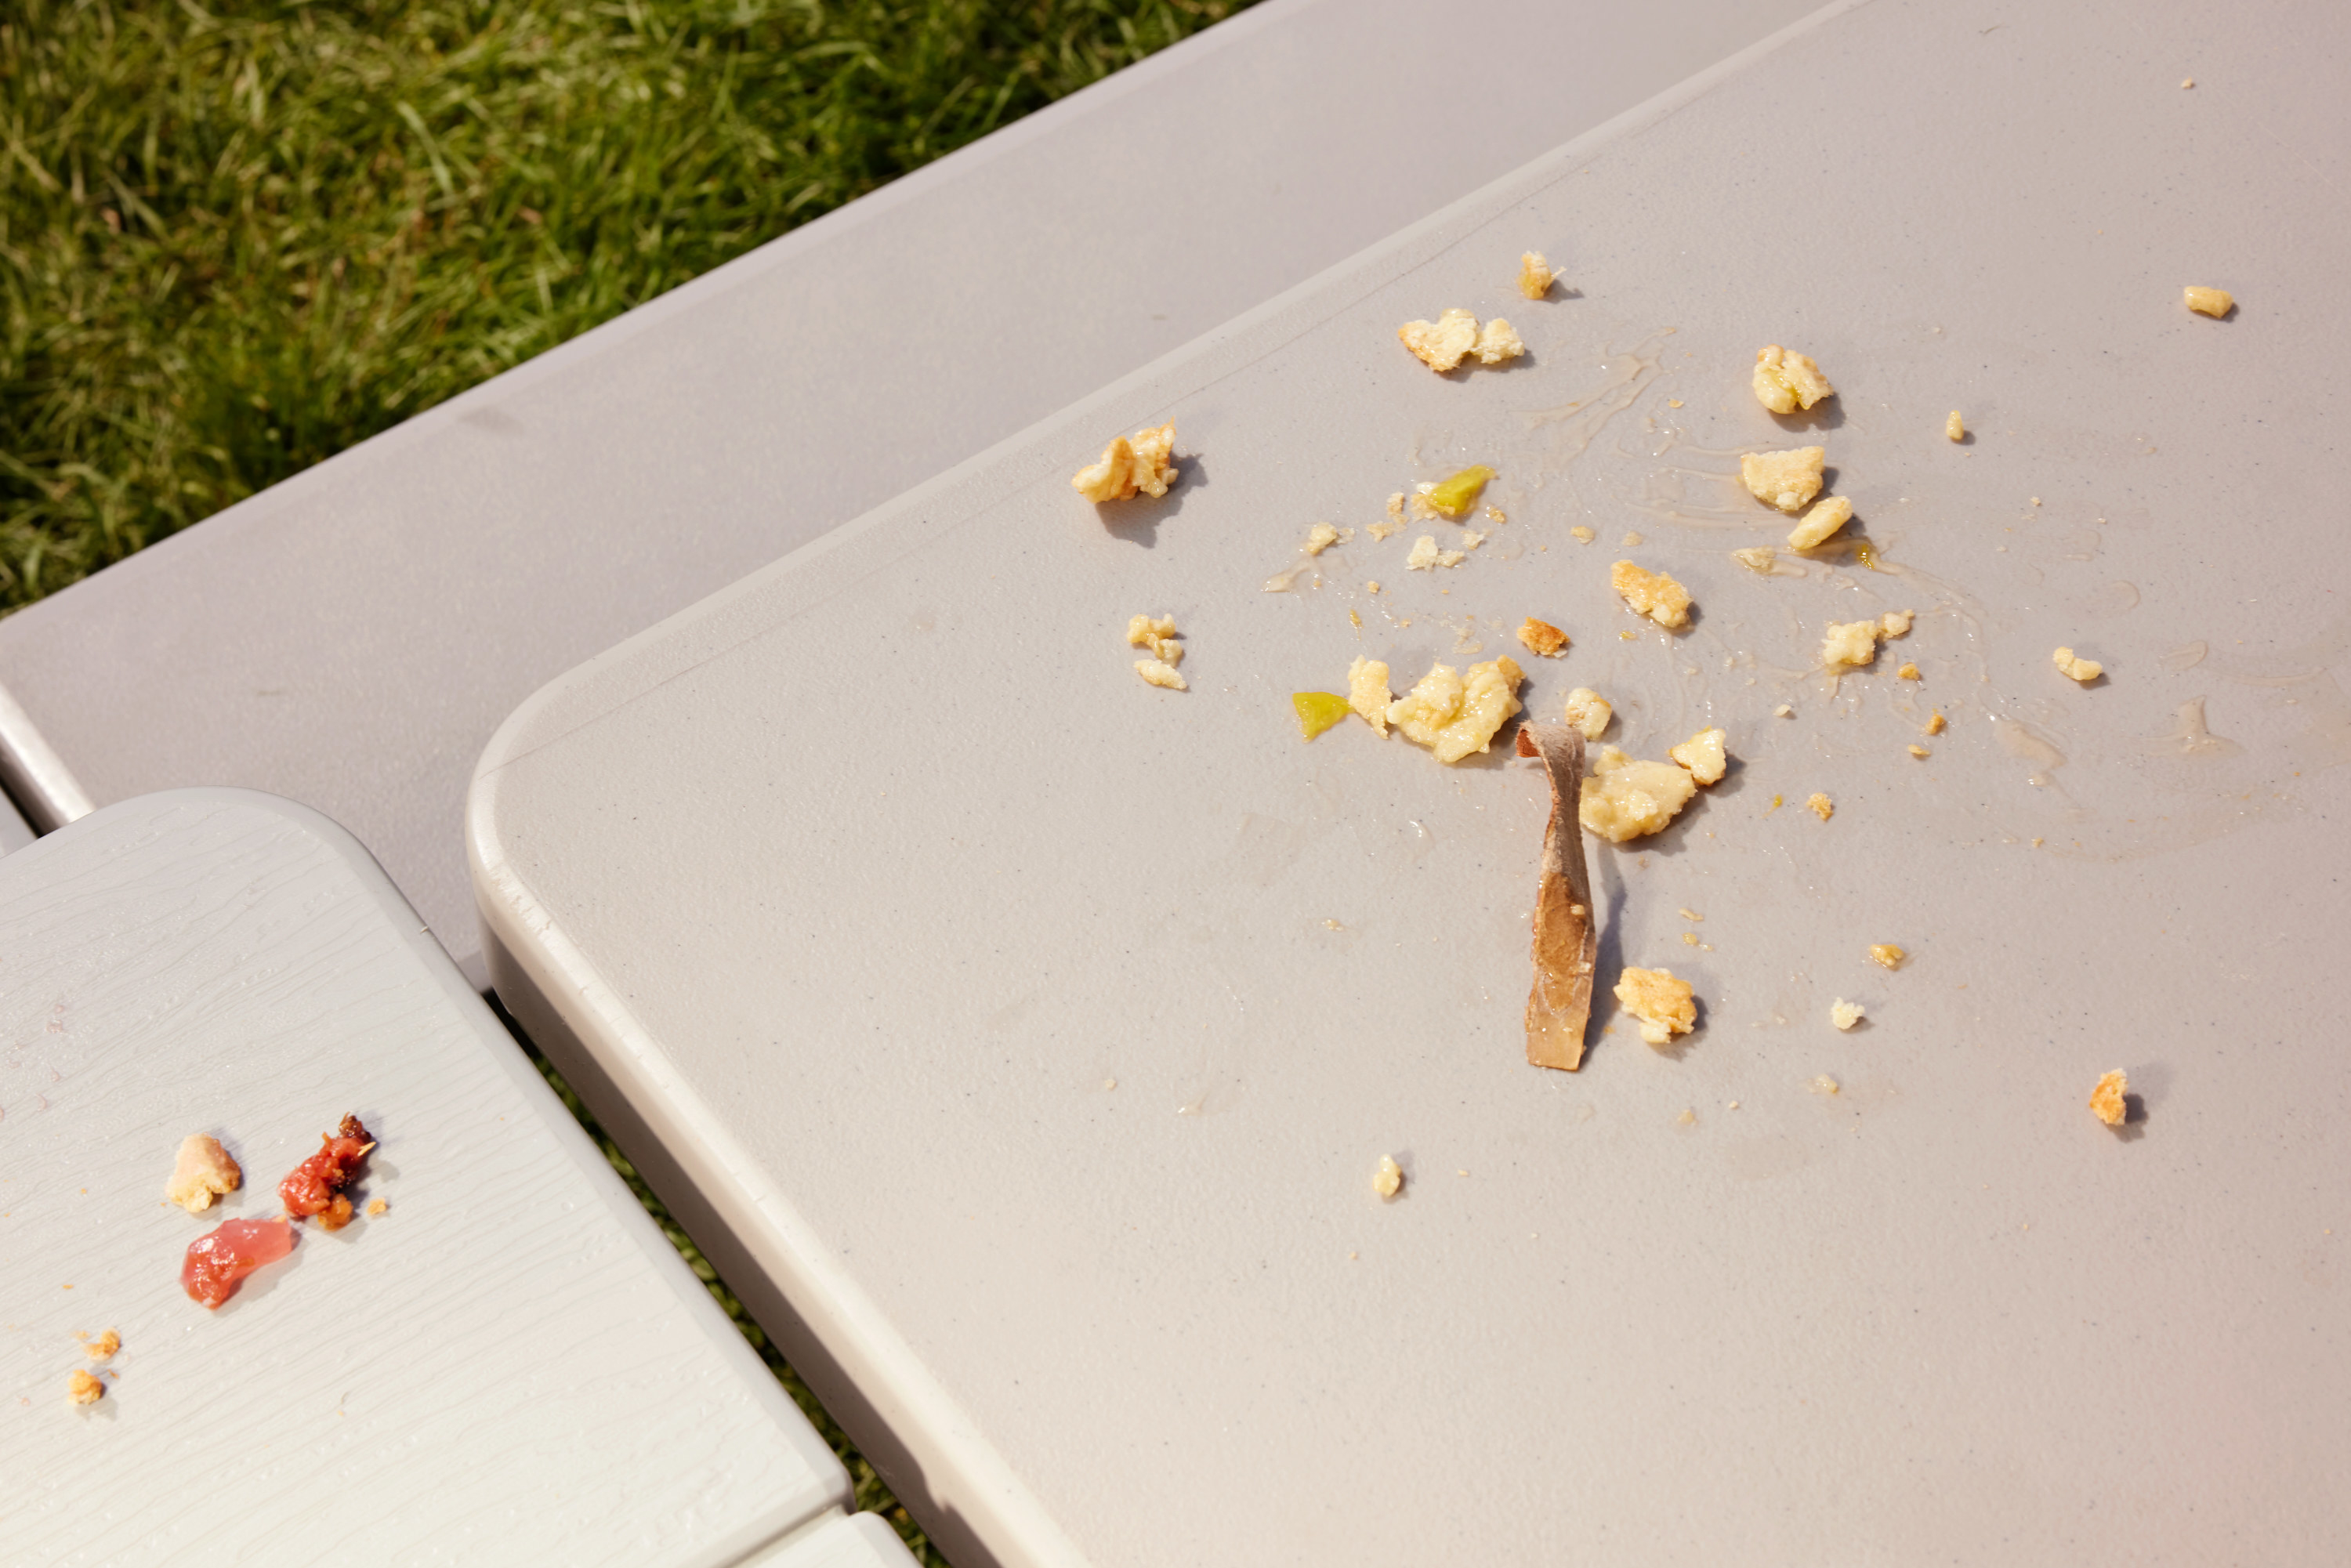 Pie crust and filling smeared on an outdoor picnic table after the contest